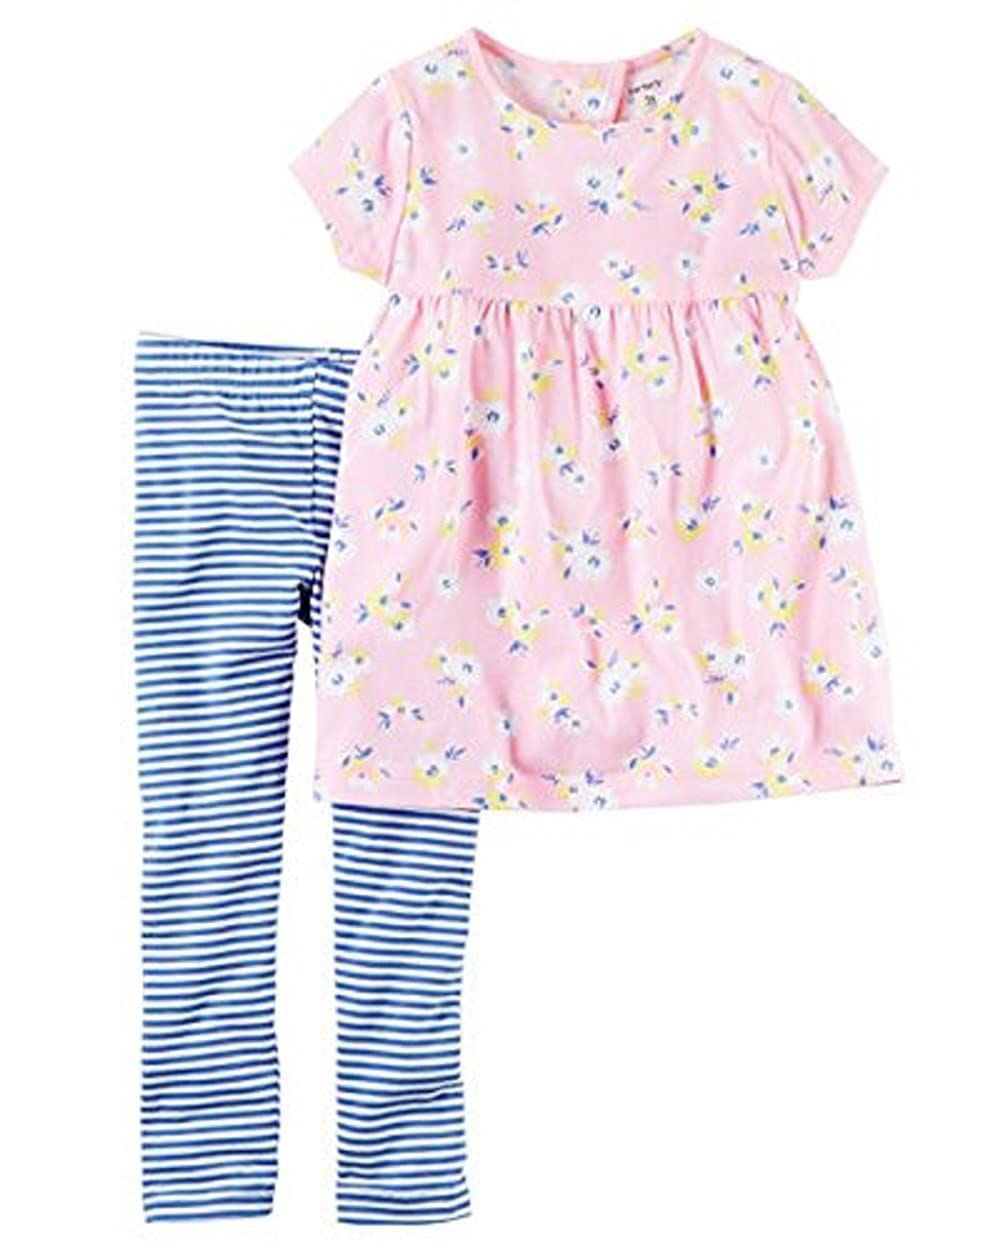 Carters Girls 2 Pc Playwear Sets 259g342 Carters